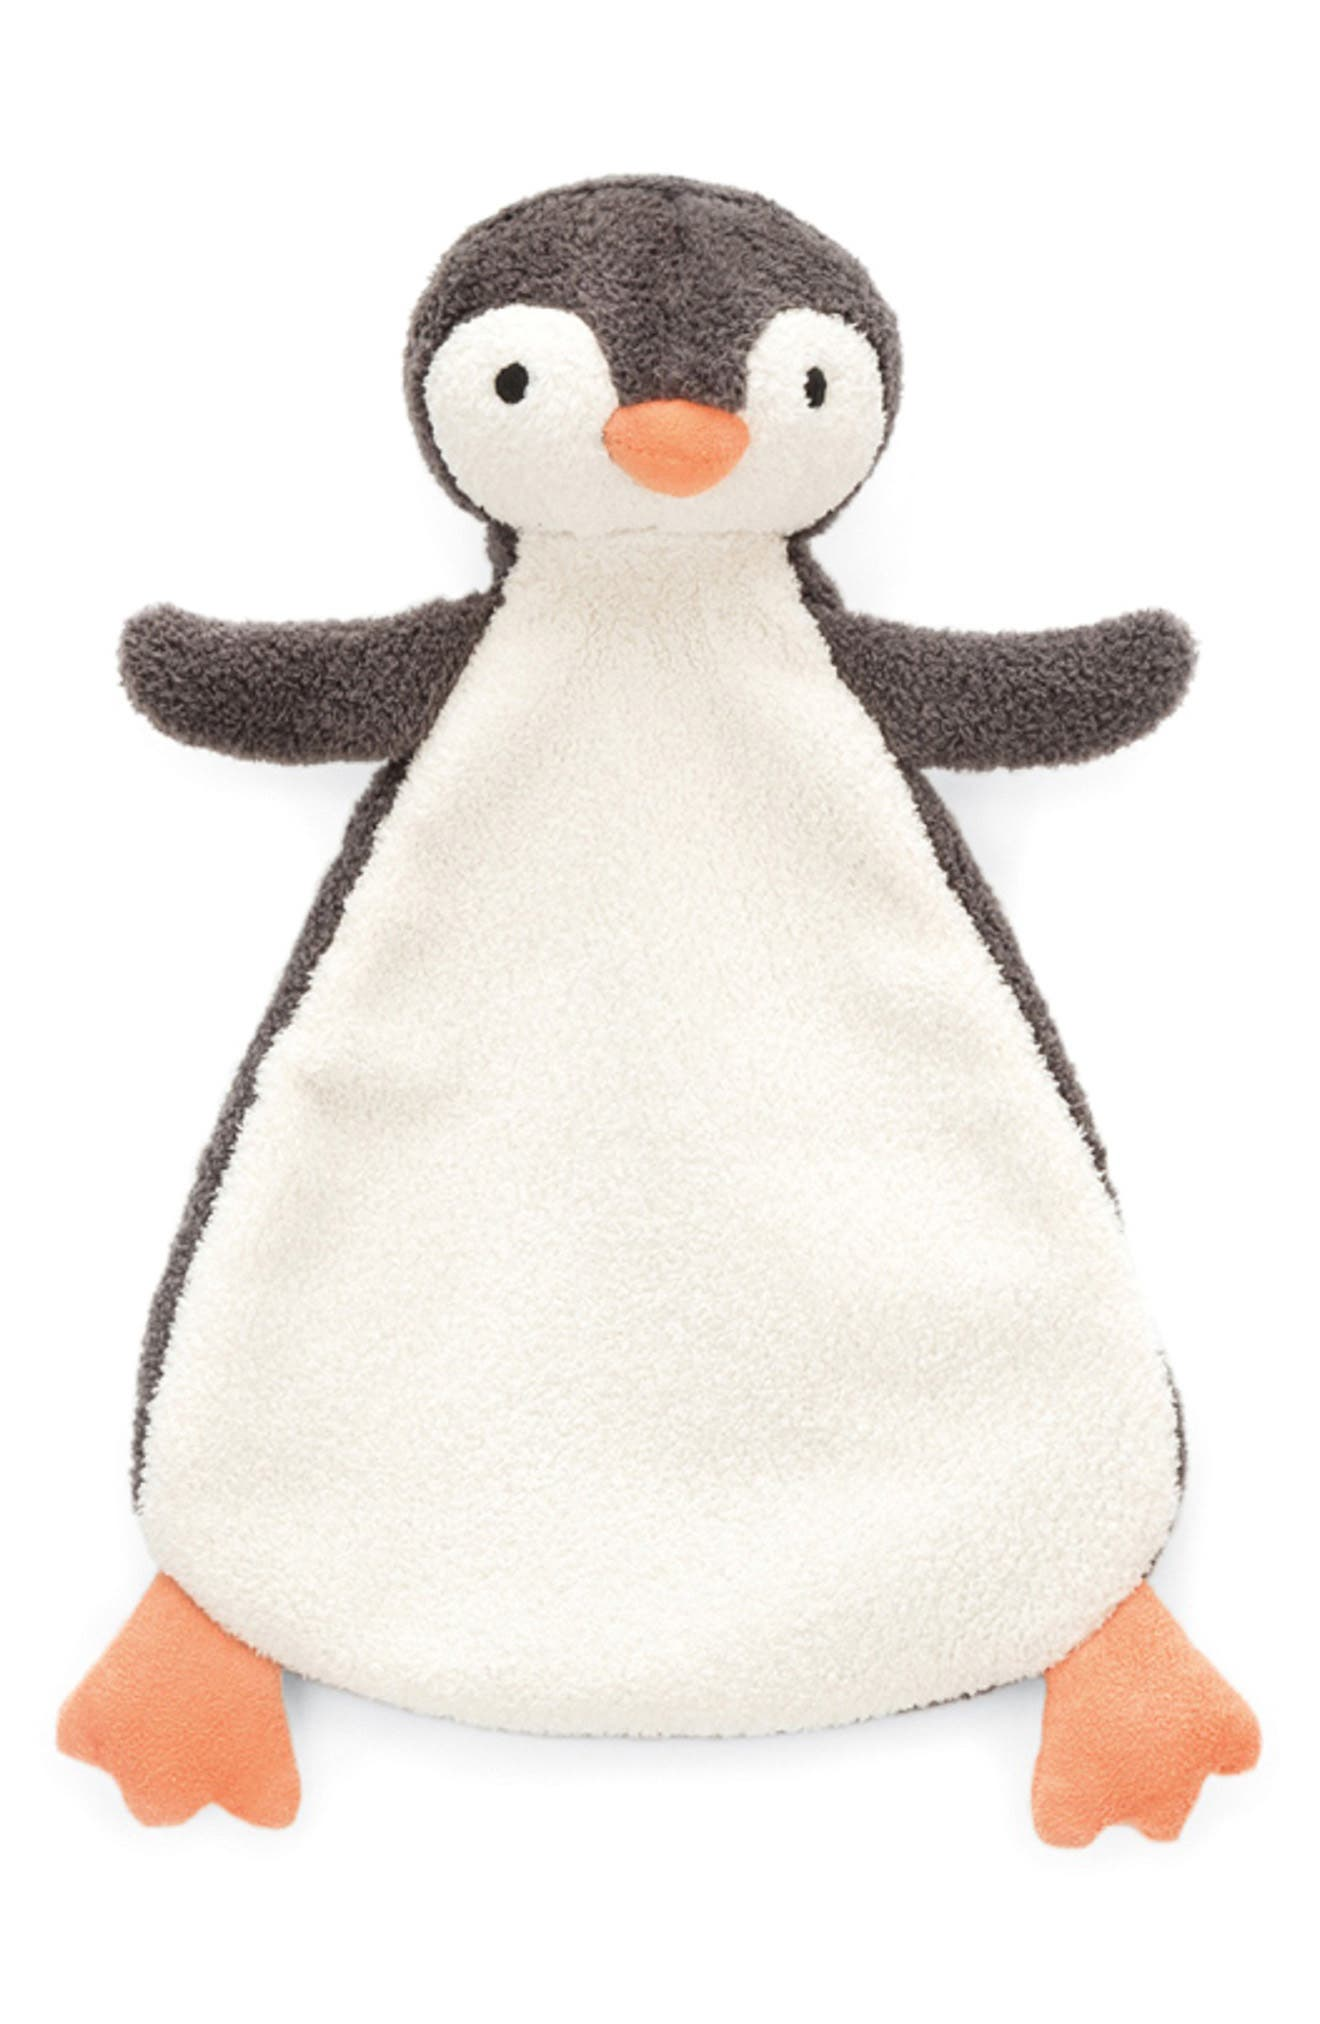 Pippet Penguin Soother Blanket,                         Main,                         color, BLACK / WHITE